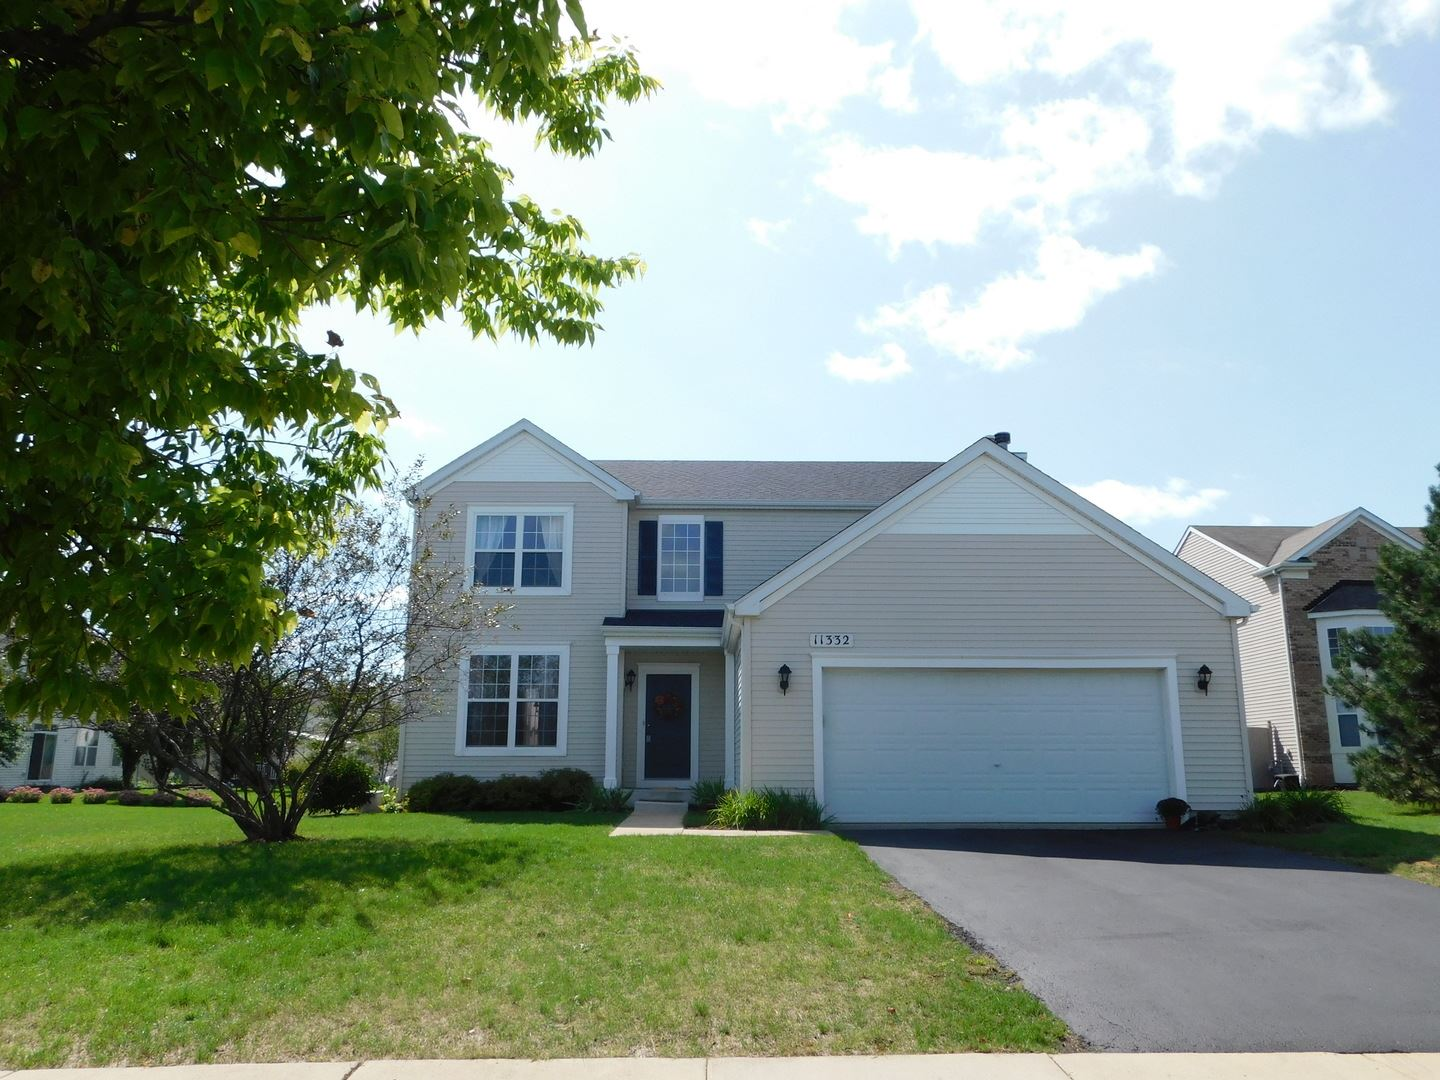 11332 Champion Court, Plainfield, IL 60585 - #: 10787393